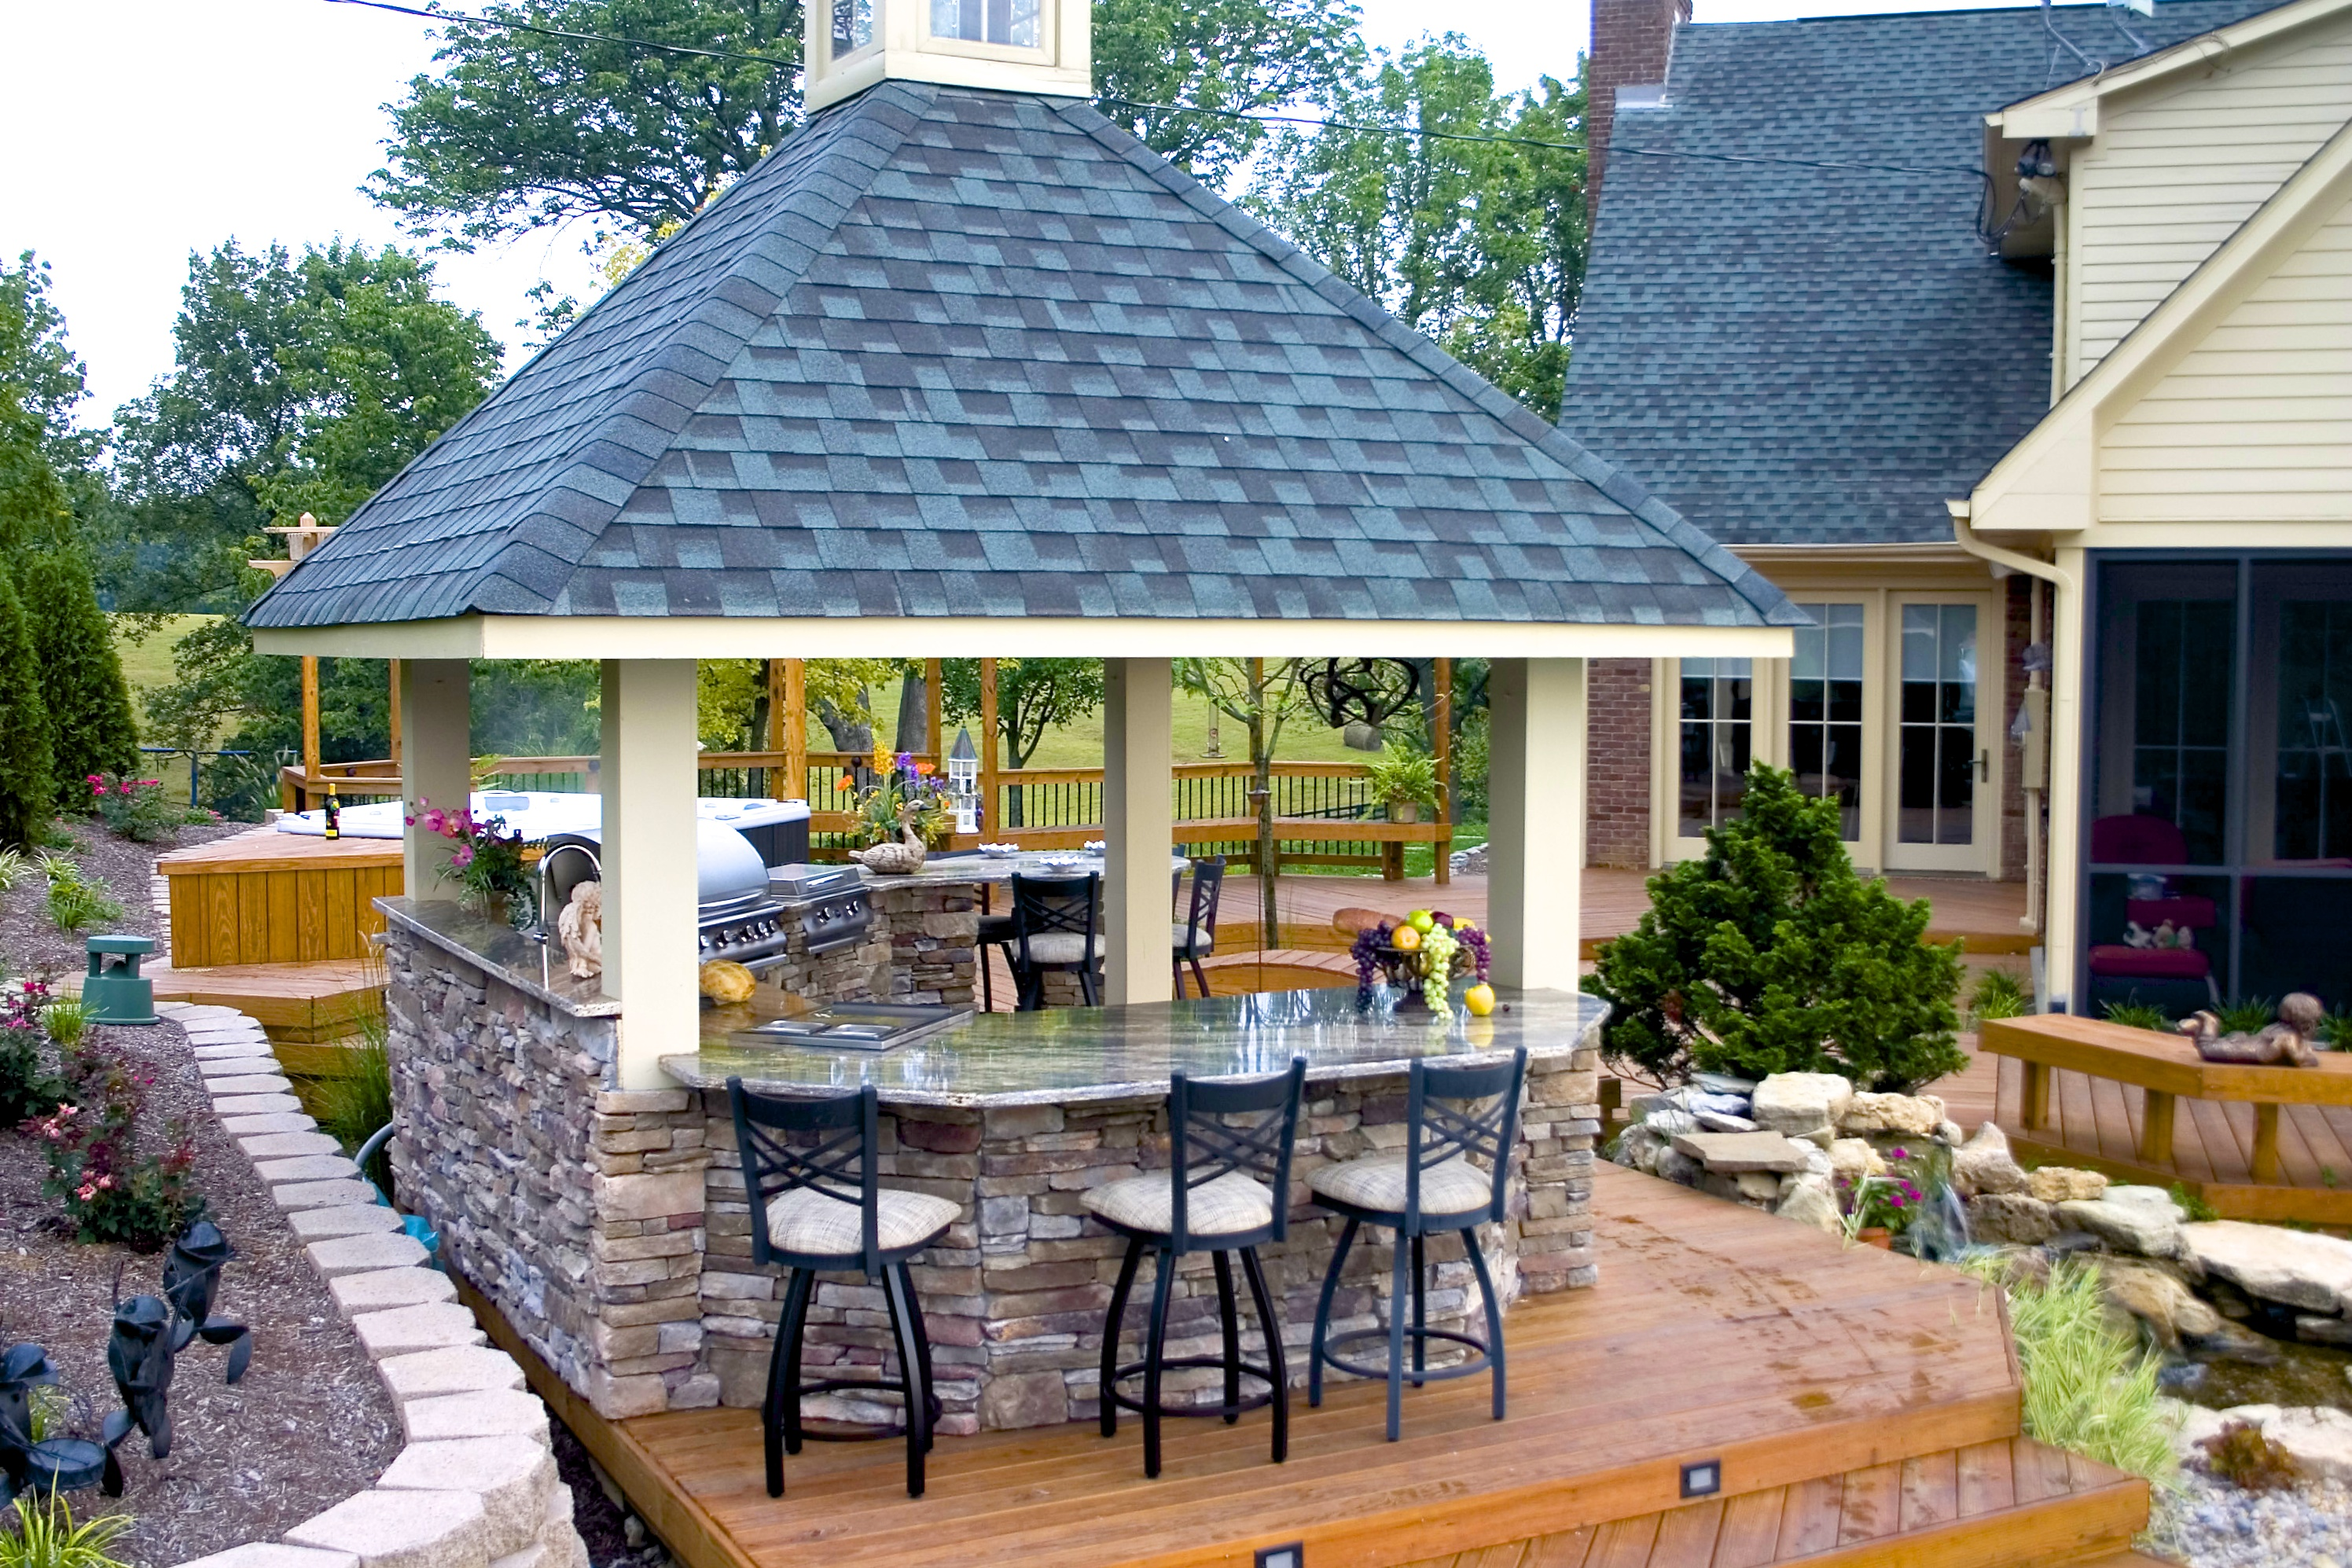 Custom Outdoor Kitchens by American Deck & Sunroom in Lexington ...